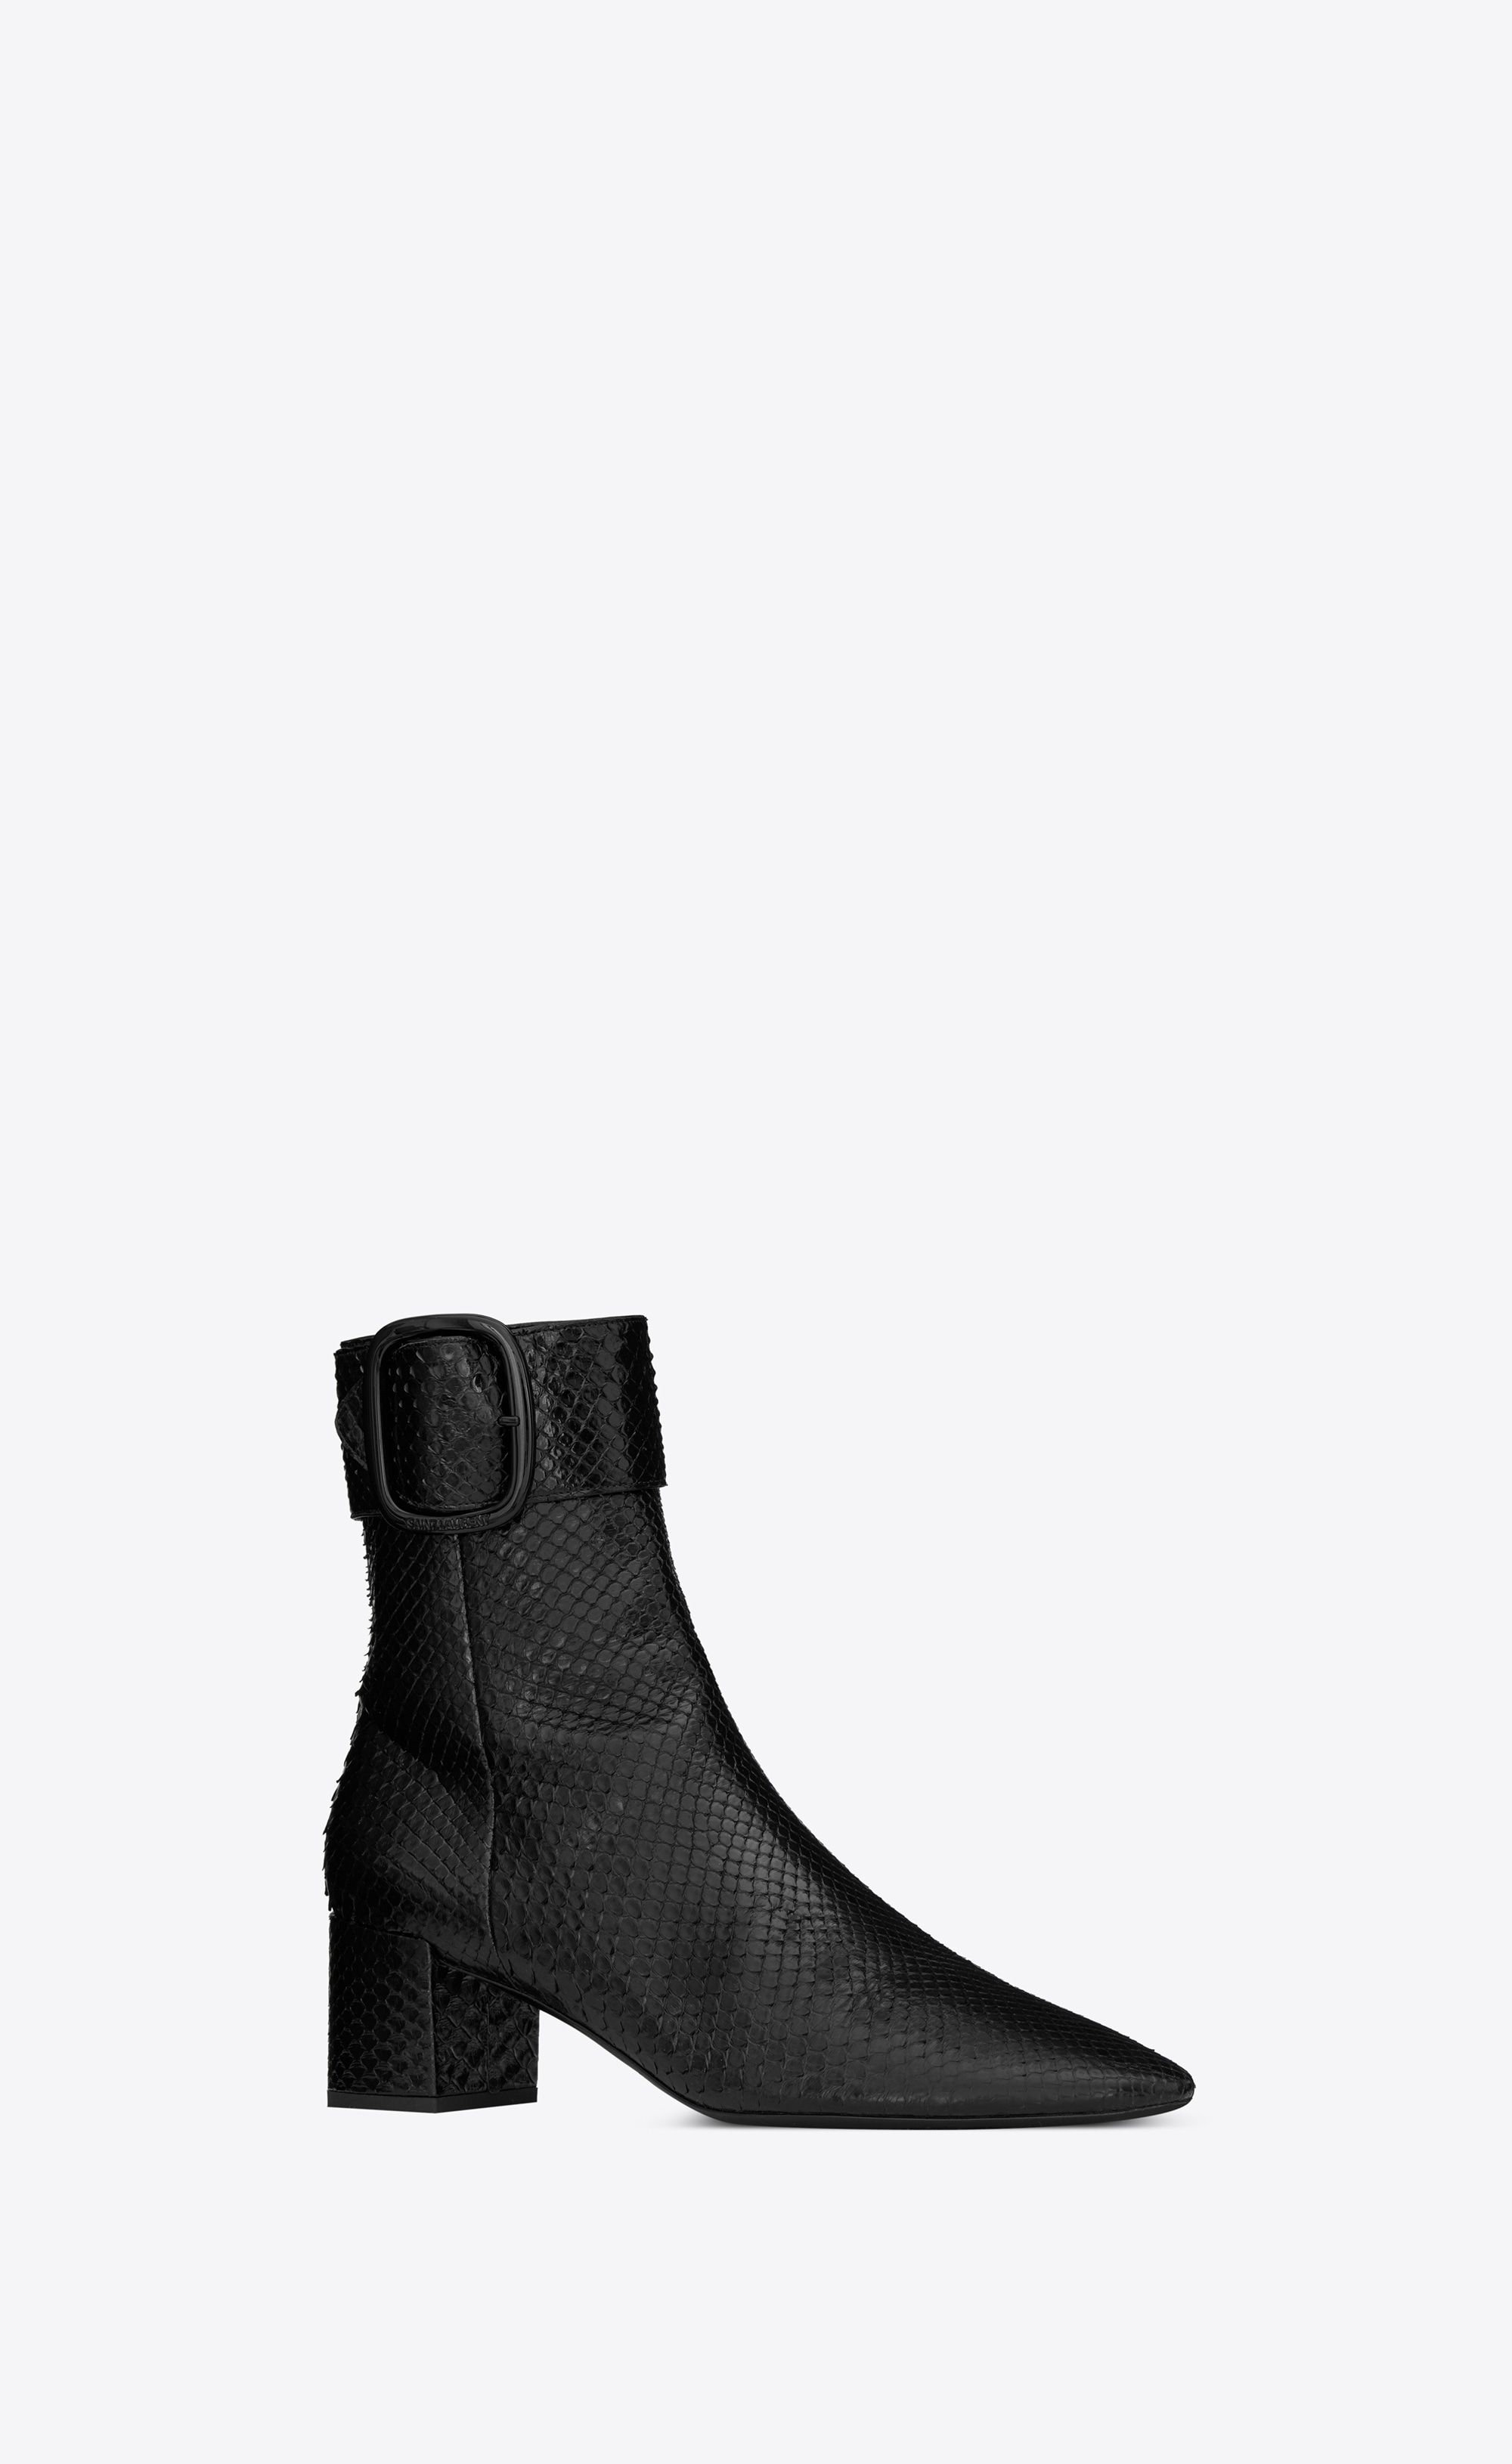 3327b6a4b7d Joplin ankle boots in python | Style and Funk | Boots, Shoes, Shoes ...